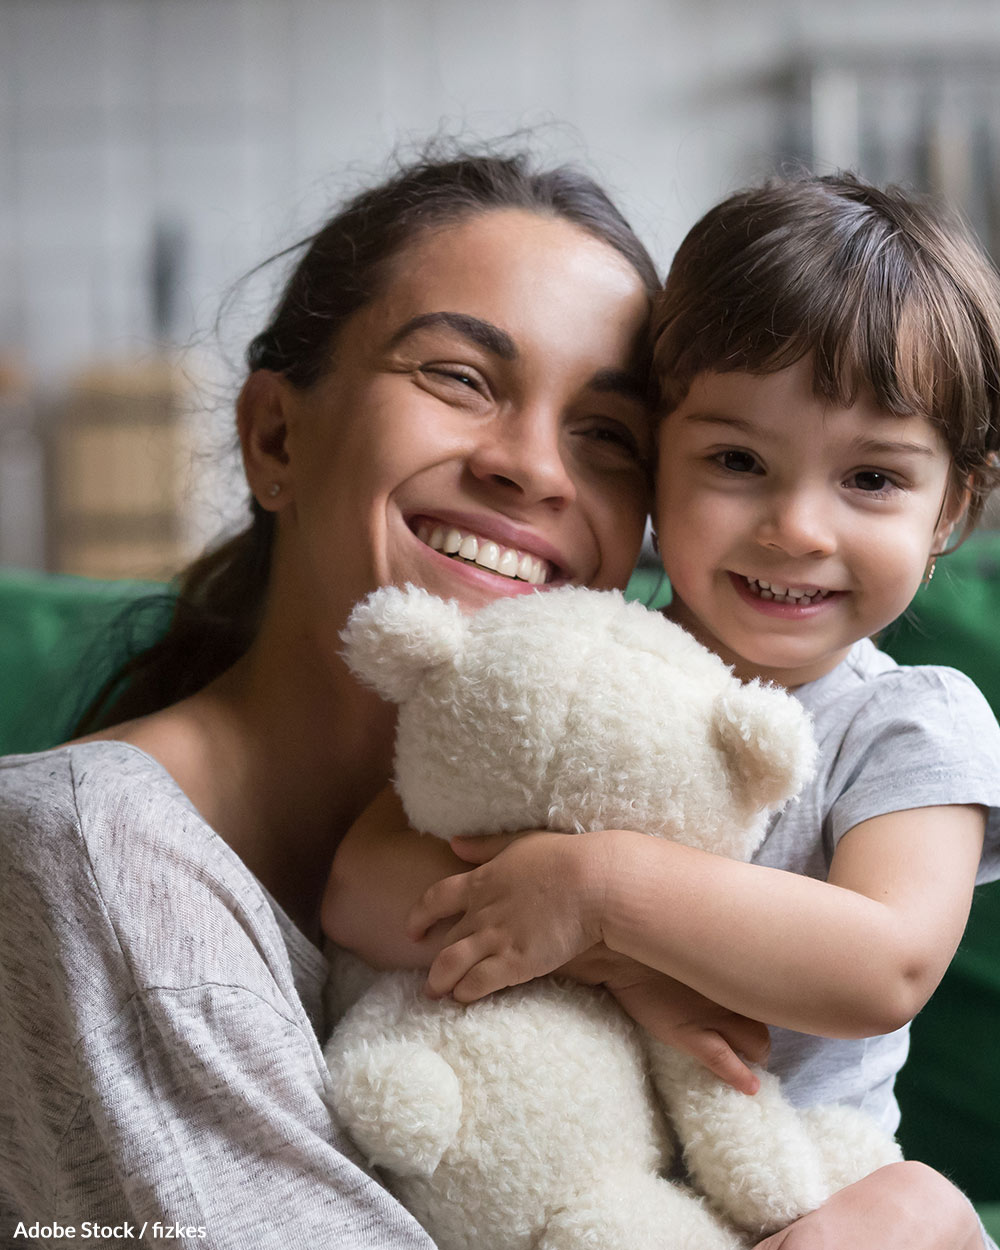 The United States offers markedly low levels of financial support for young children's care in comparison to other developed countries.